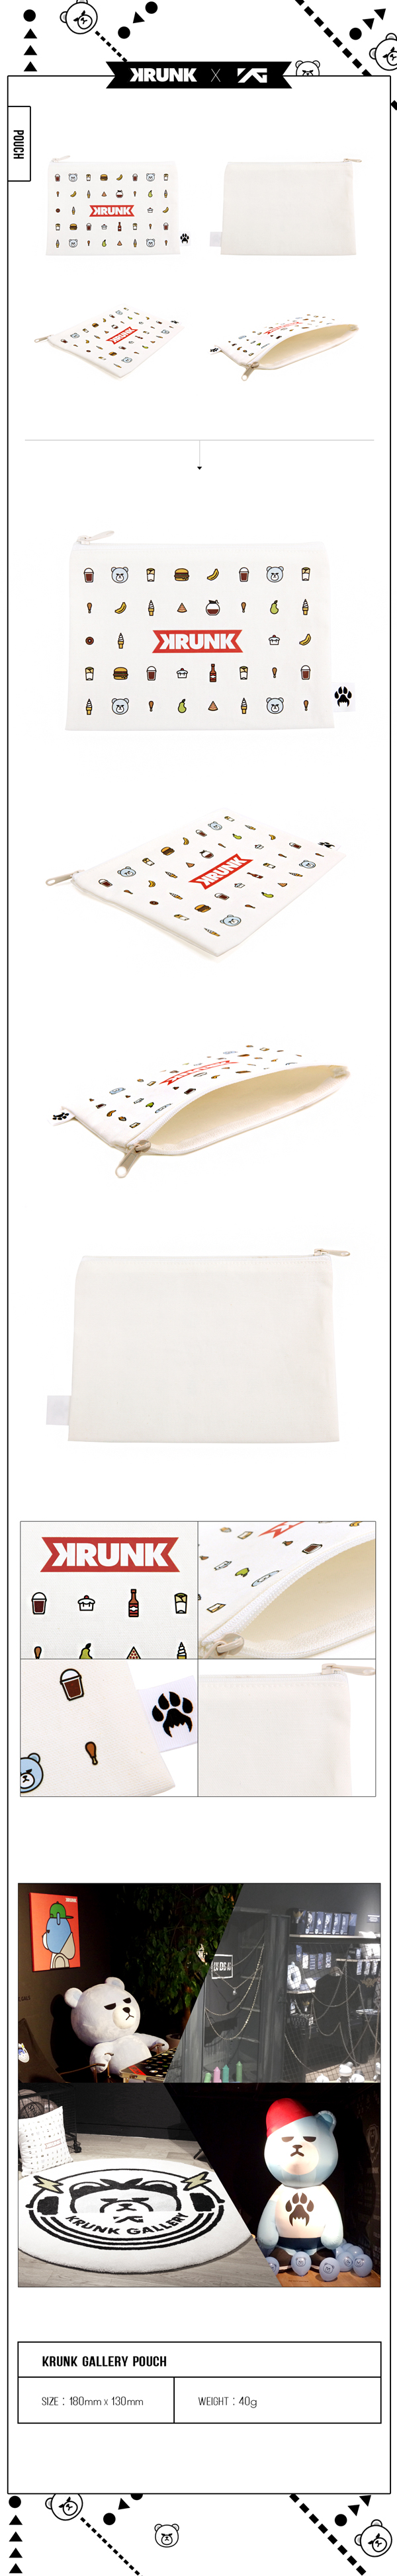 pouch_01